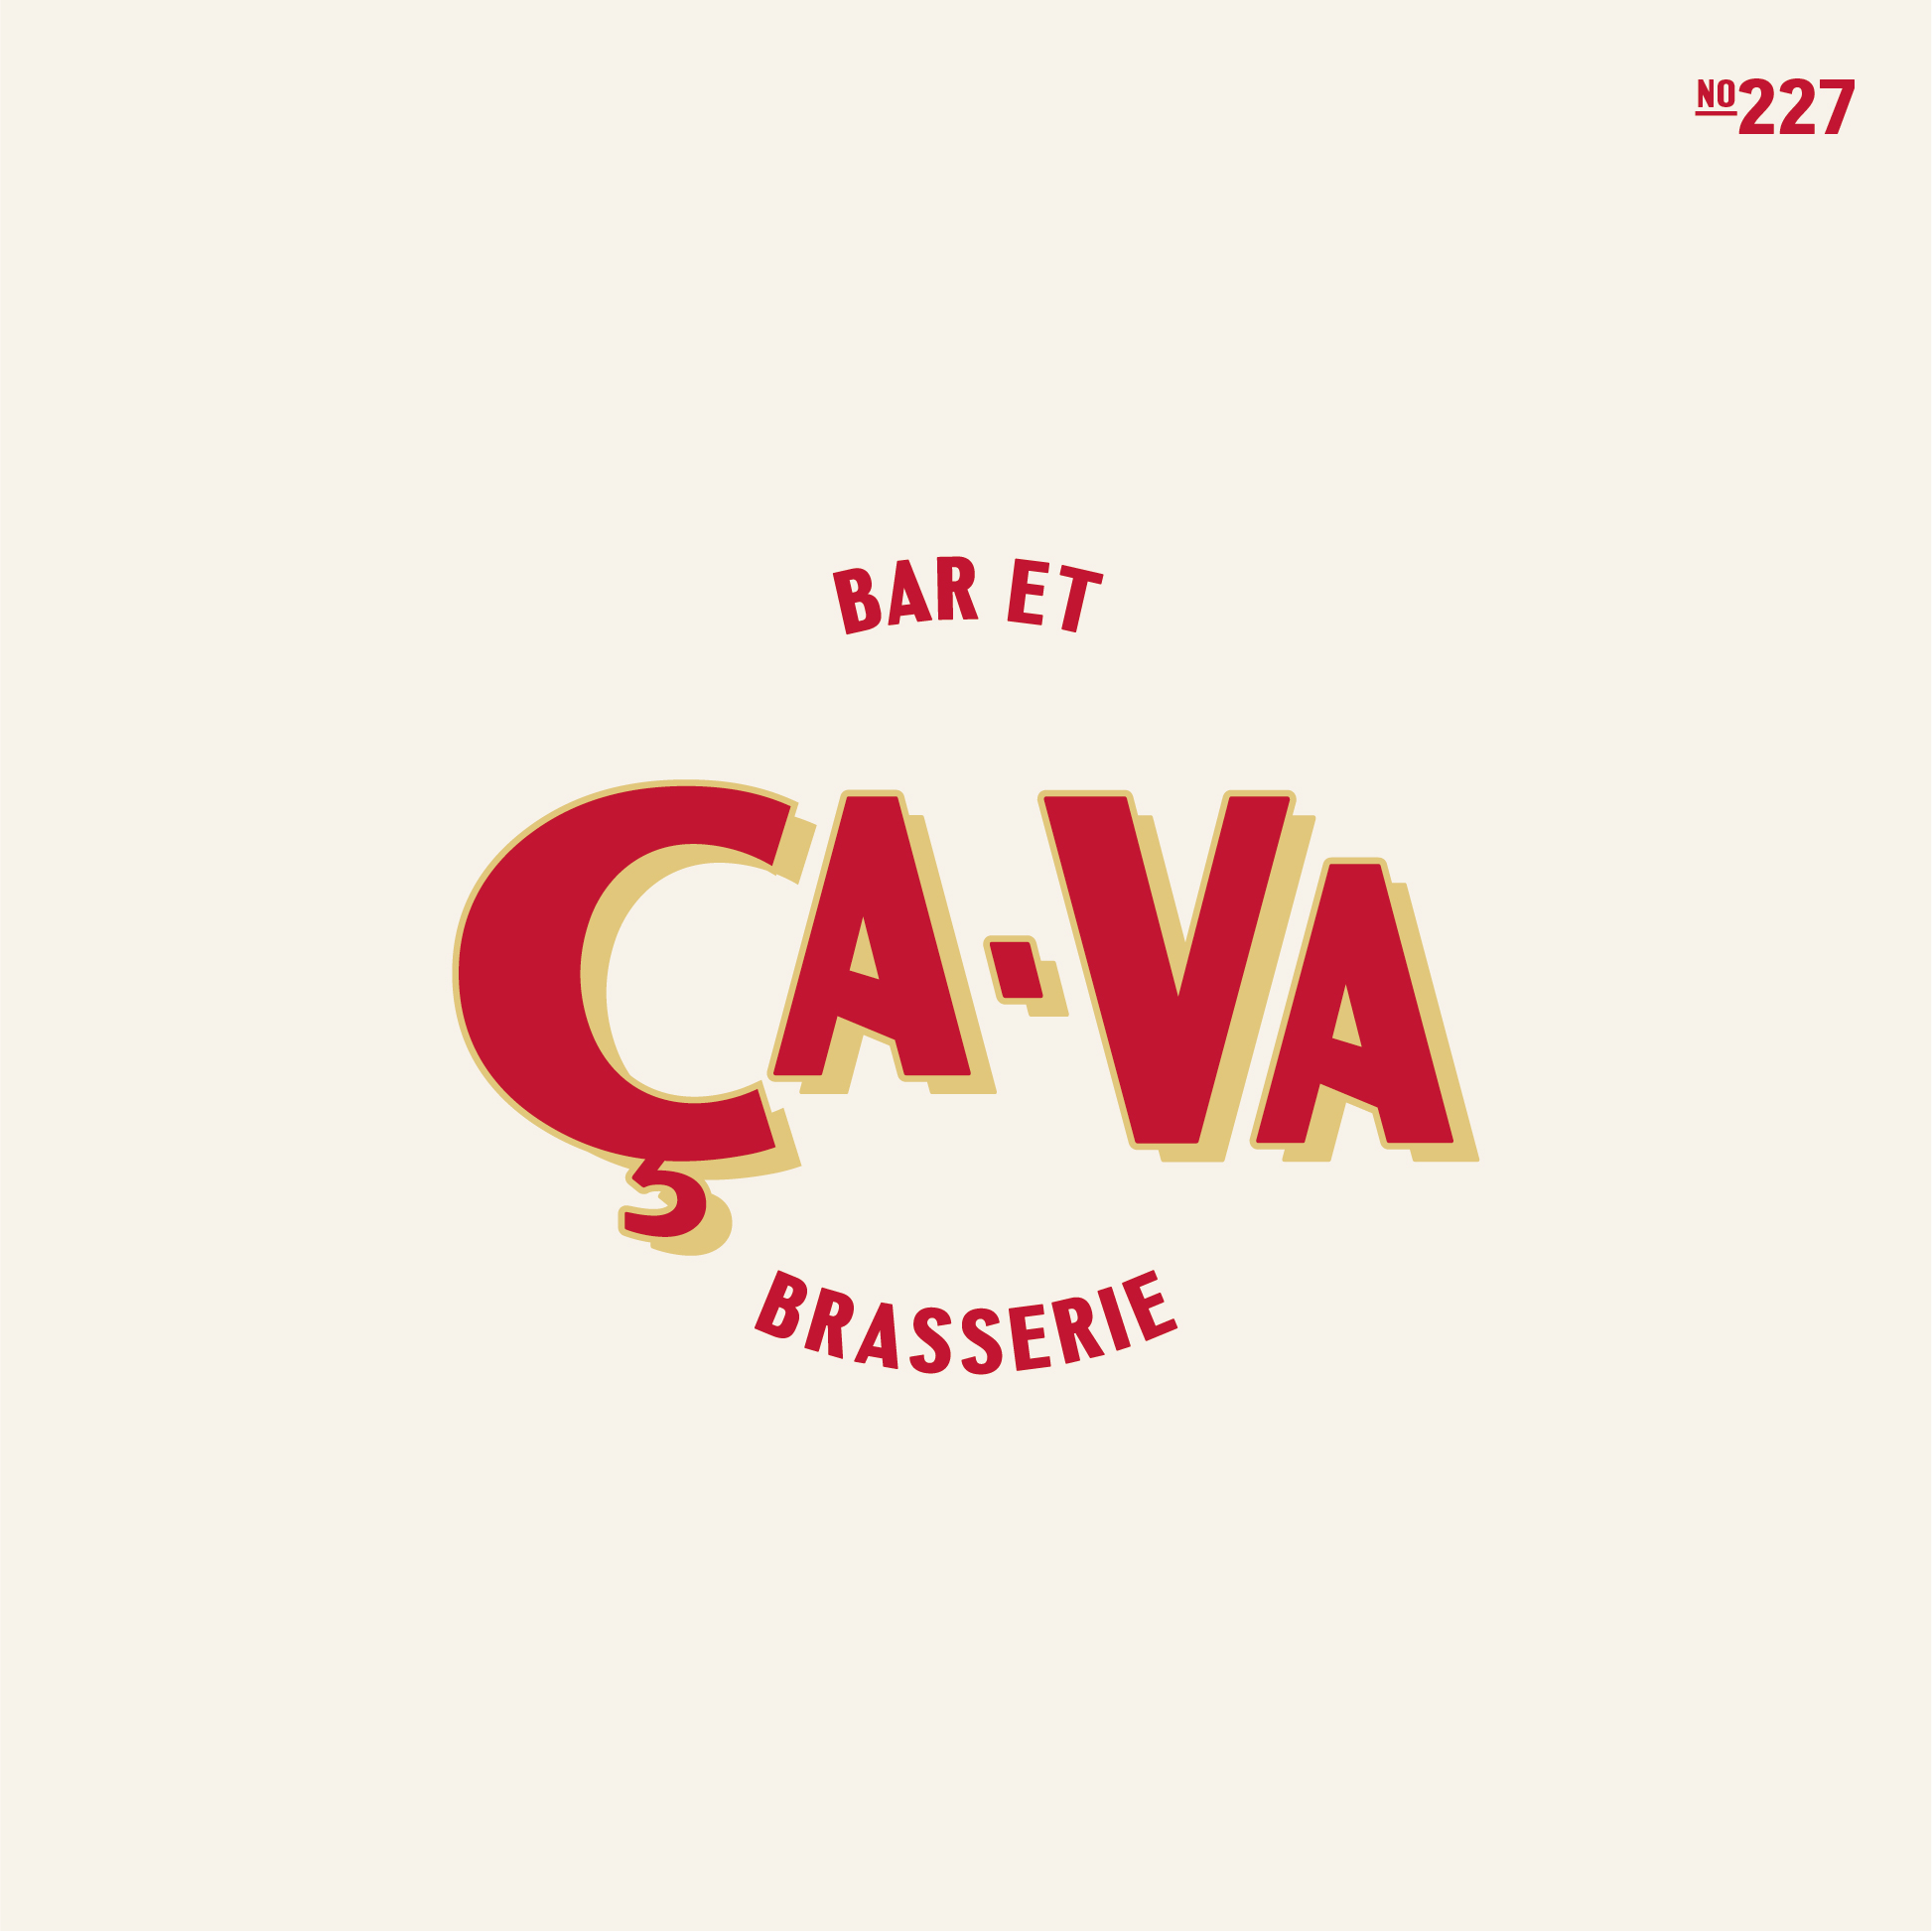 ÇaVa Brand Identity and Storefront Design for French Bar and Brasserie